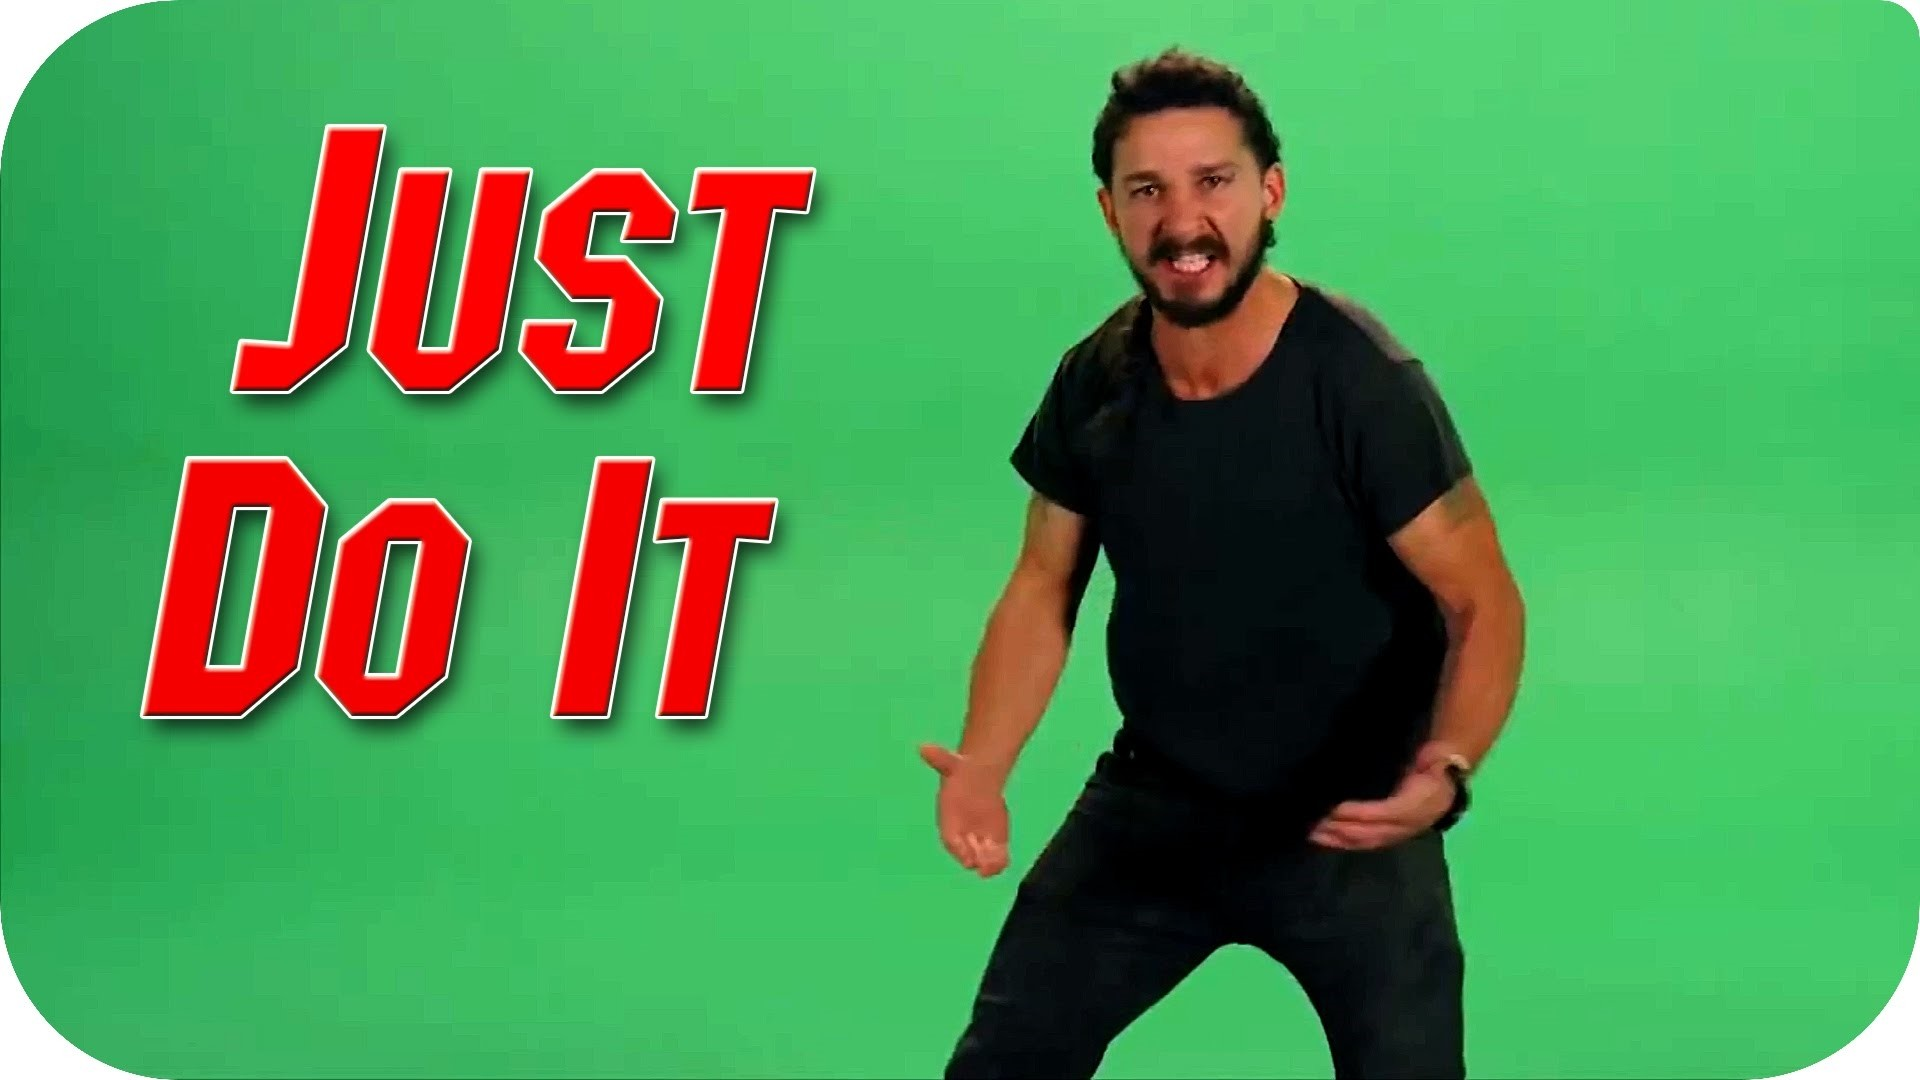 just do it meme flat,1000×1000,075,f best images collections hd